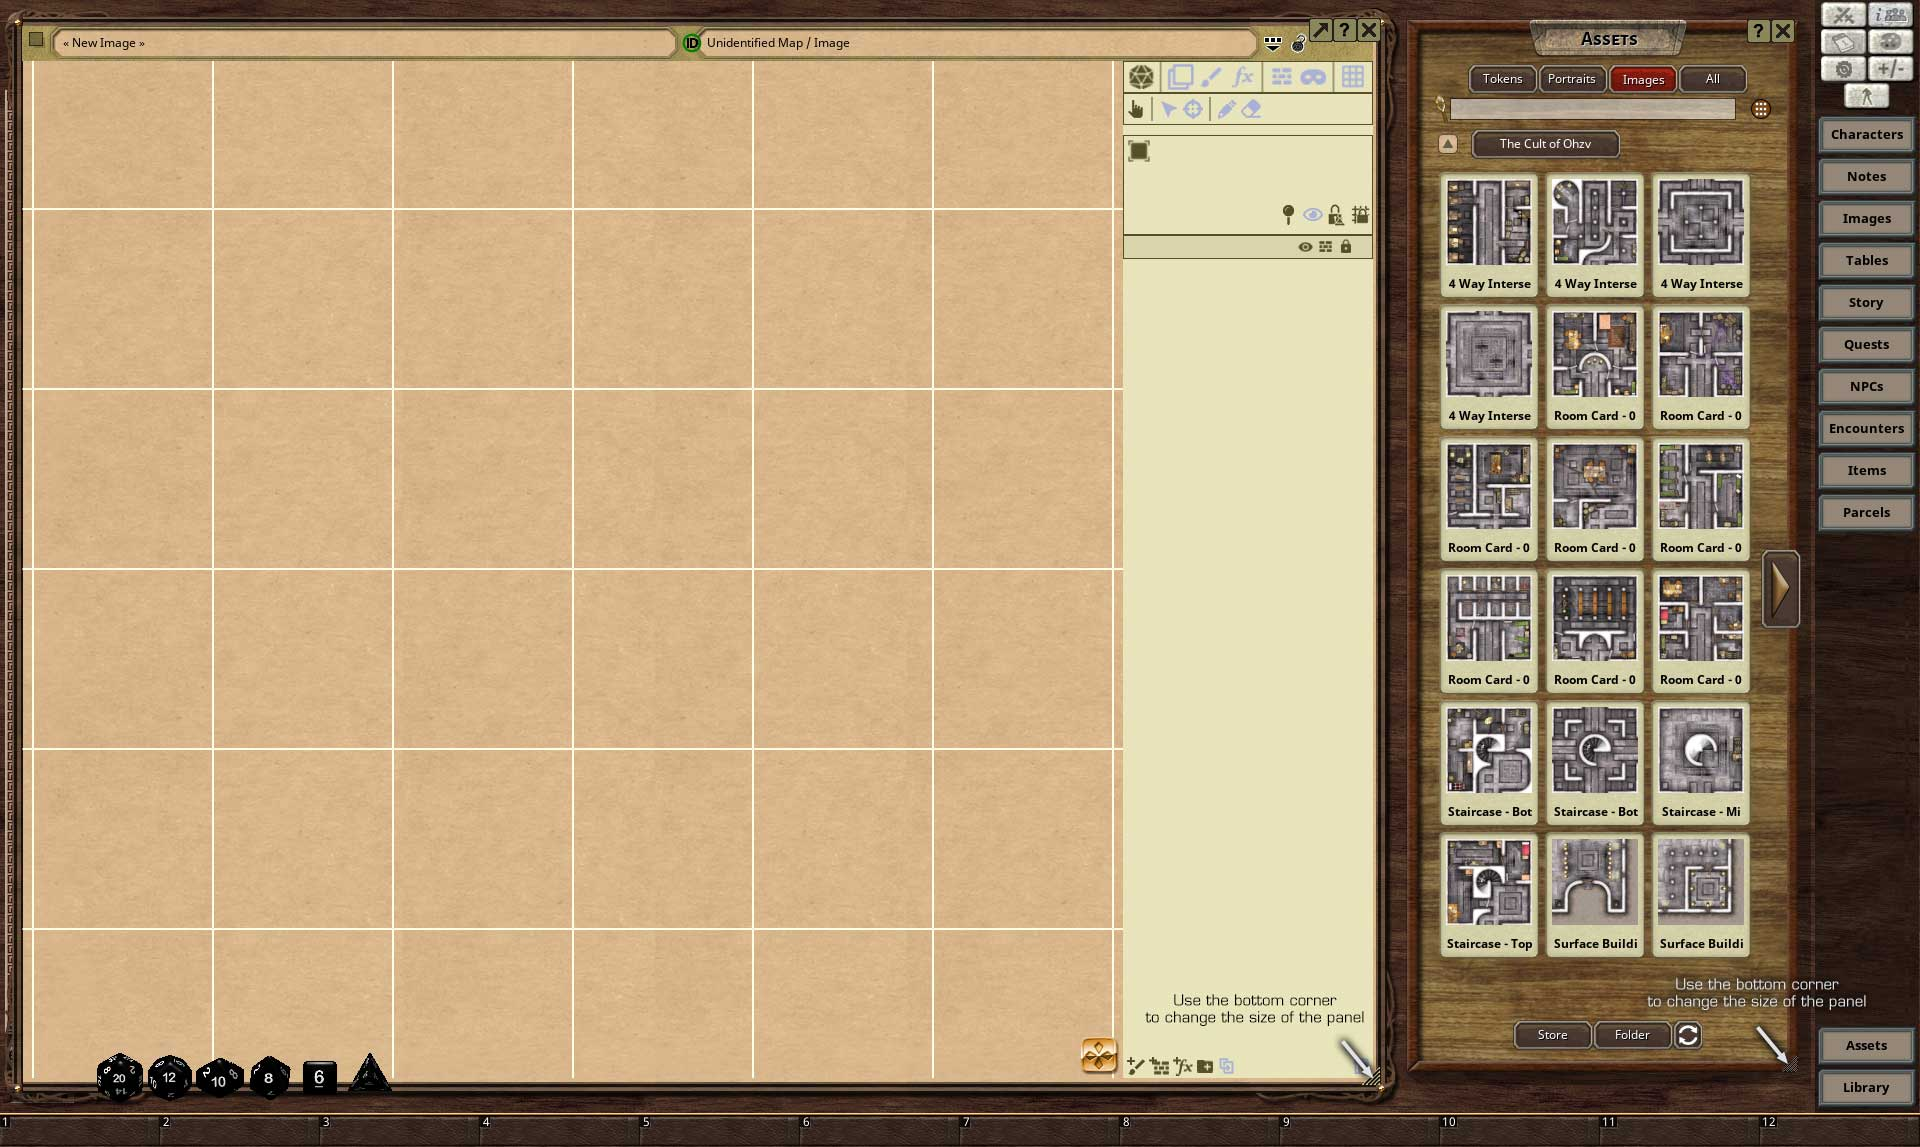 Change the size of each window to setup a workspace for map building.